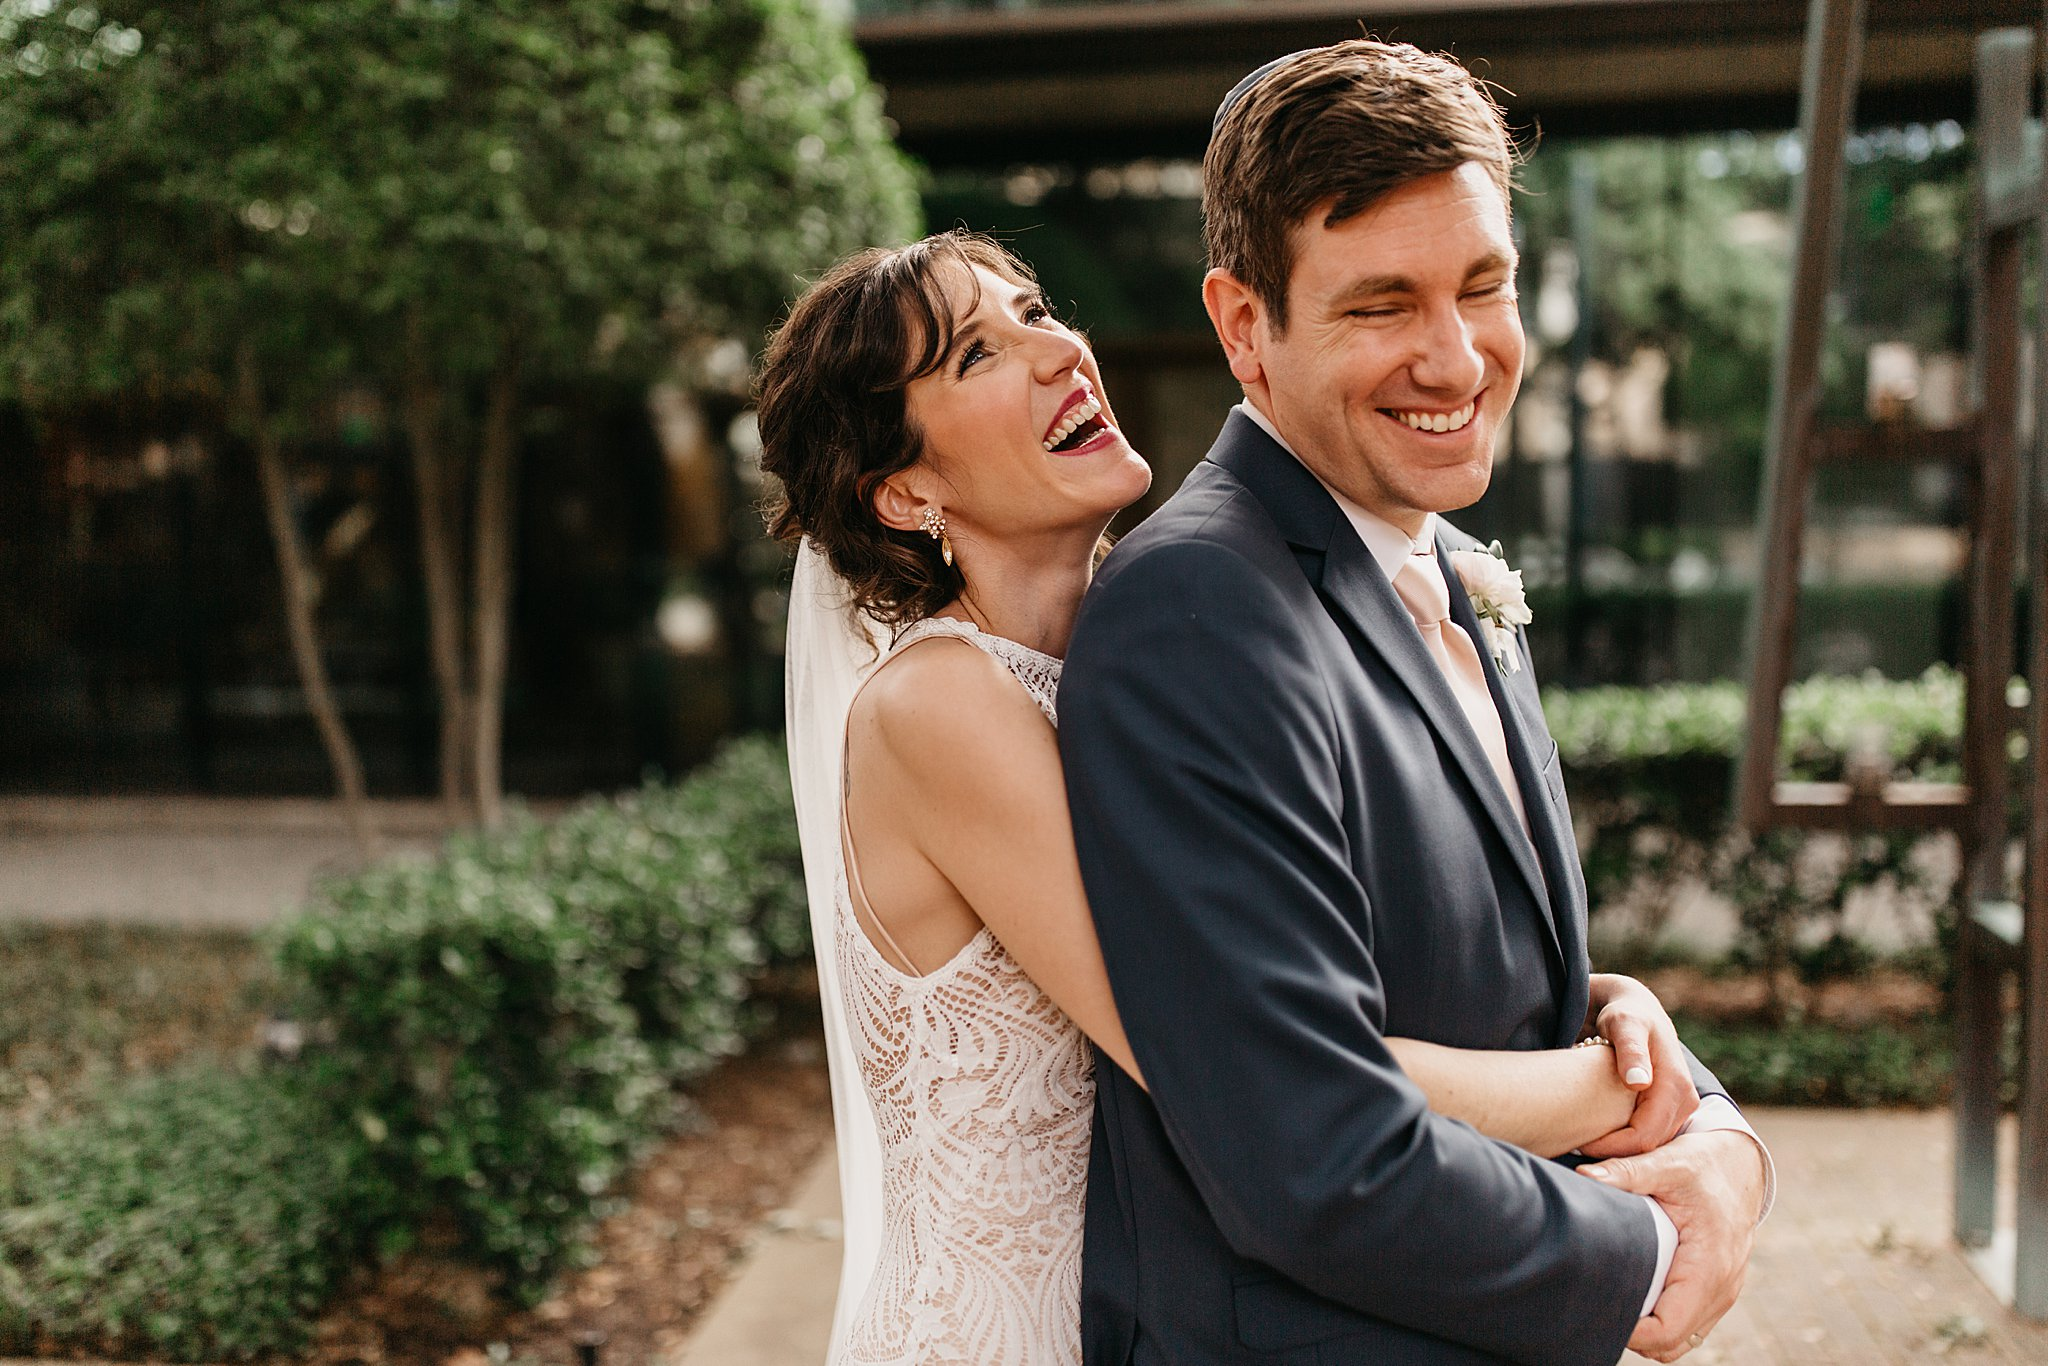 Wilderlove Co_Wedding Photographer_Industrial Wedding_Jewish Wedding_Dallas Texas Wedding_Brake & Clutch Warehouse_North Texas Photographer_0059.jpg